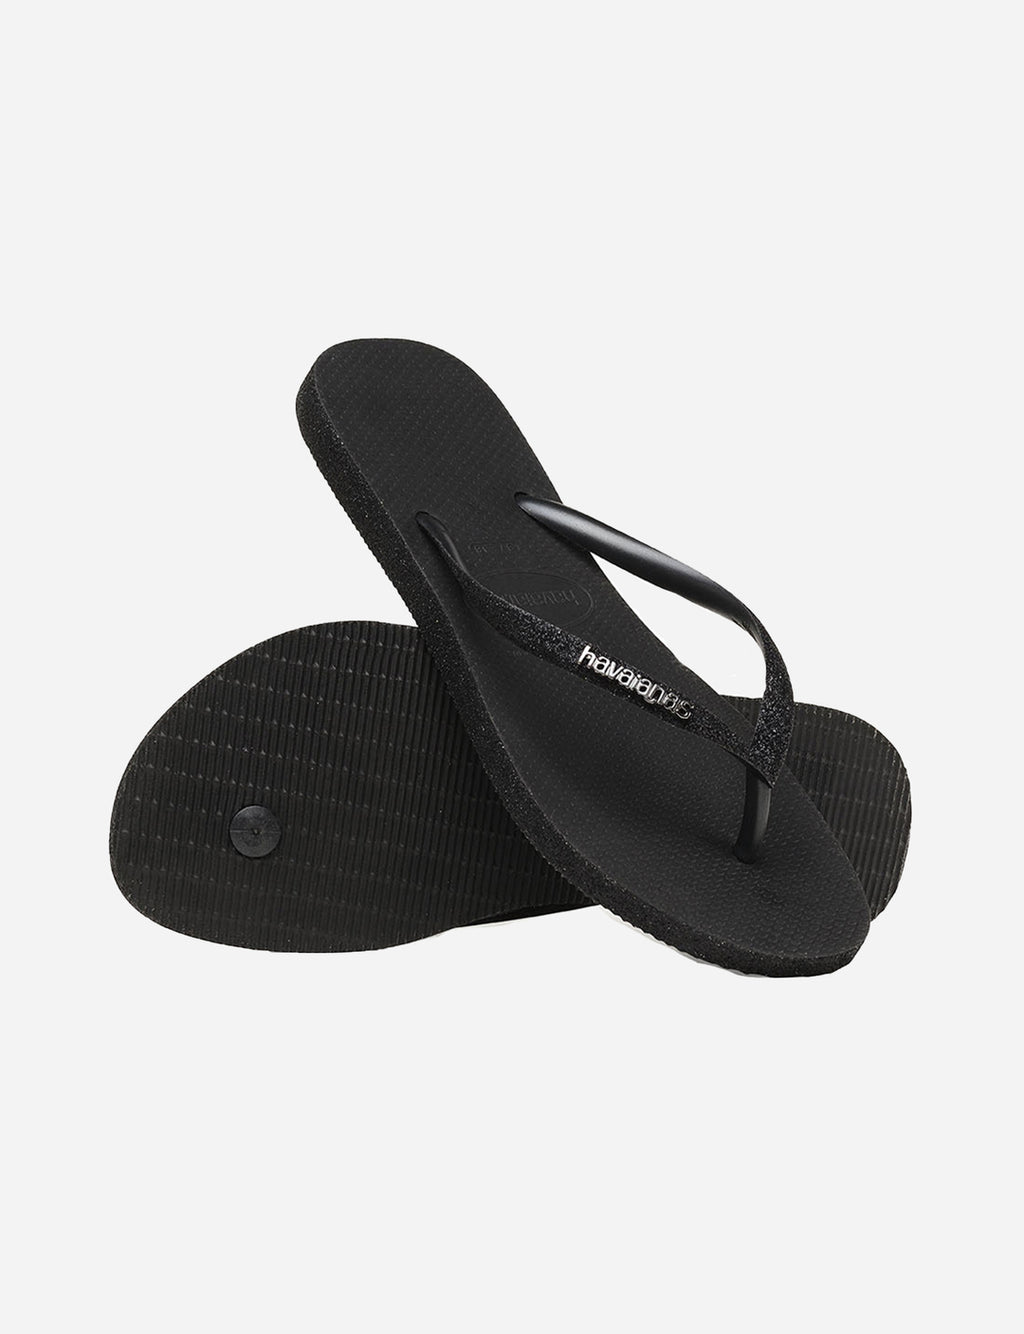 Havaianas Slim Sparkle Sandal in Black